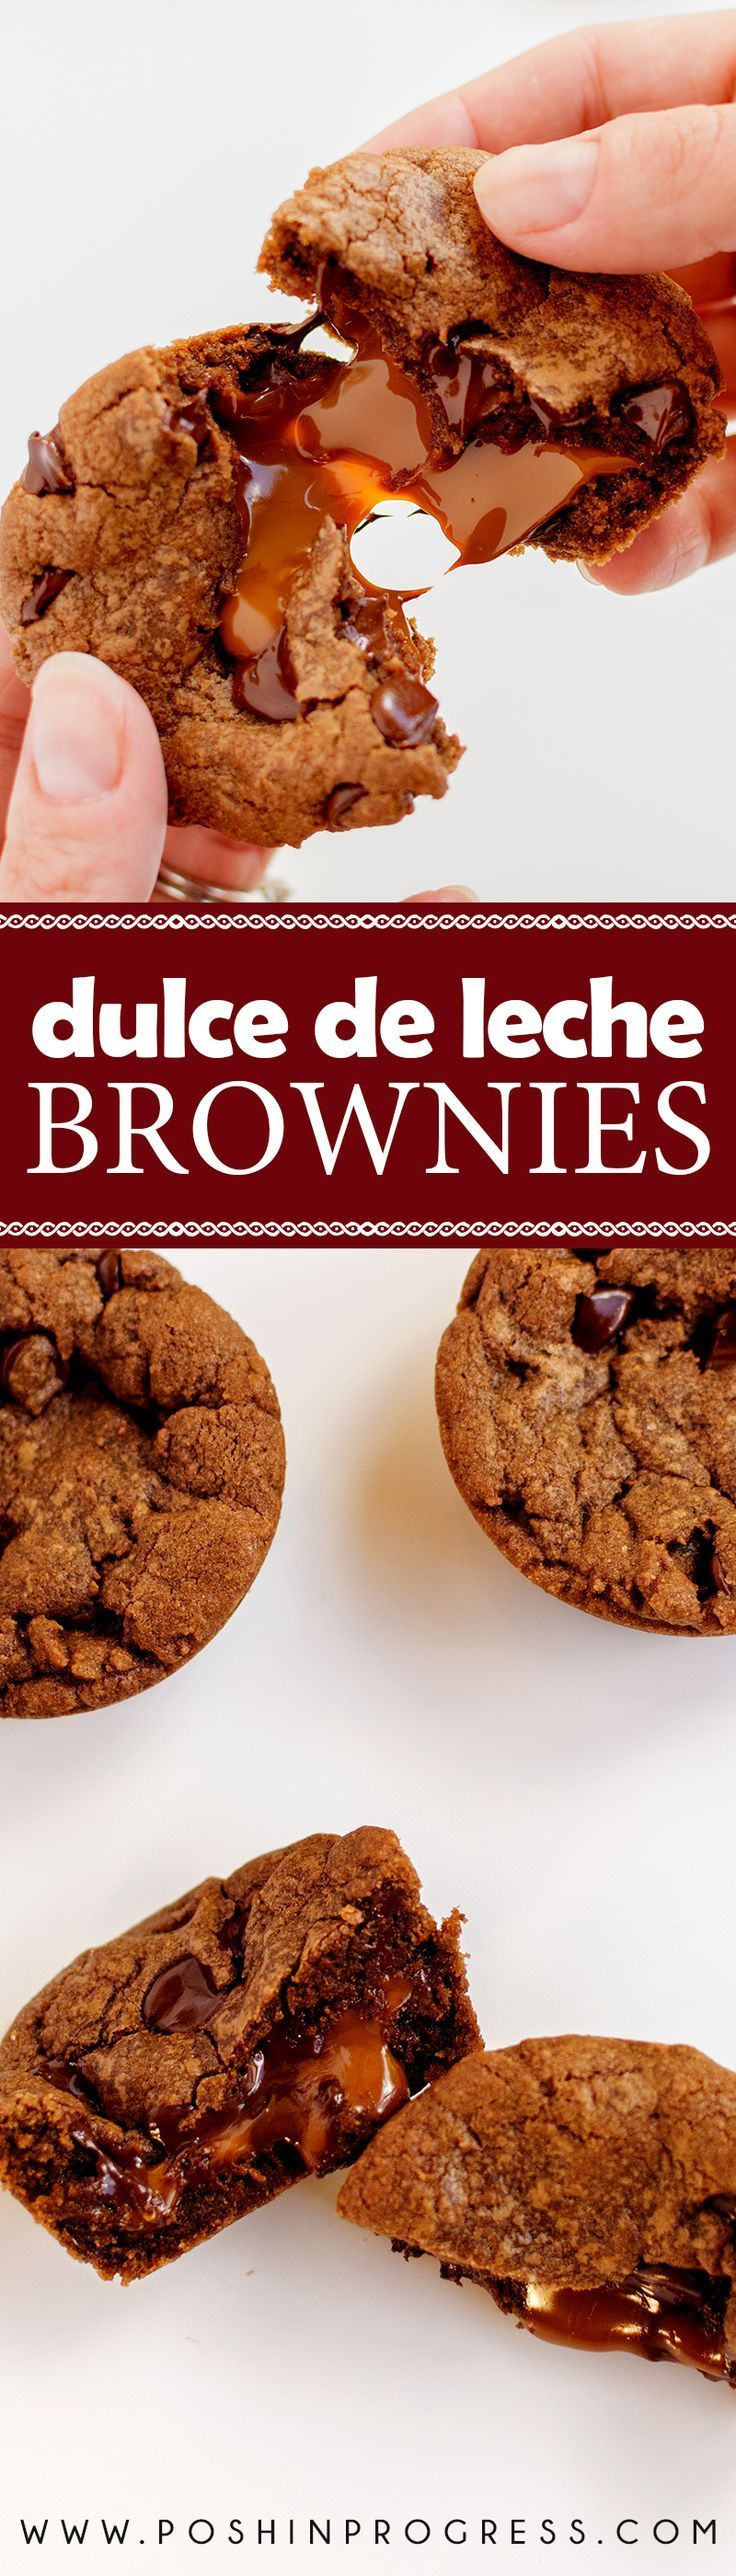 I created a dulce de leche brownie recipe using dulce de leche I got in Argentina. I also added espresso to elevate the chocolate flavor.